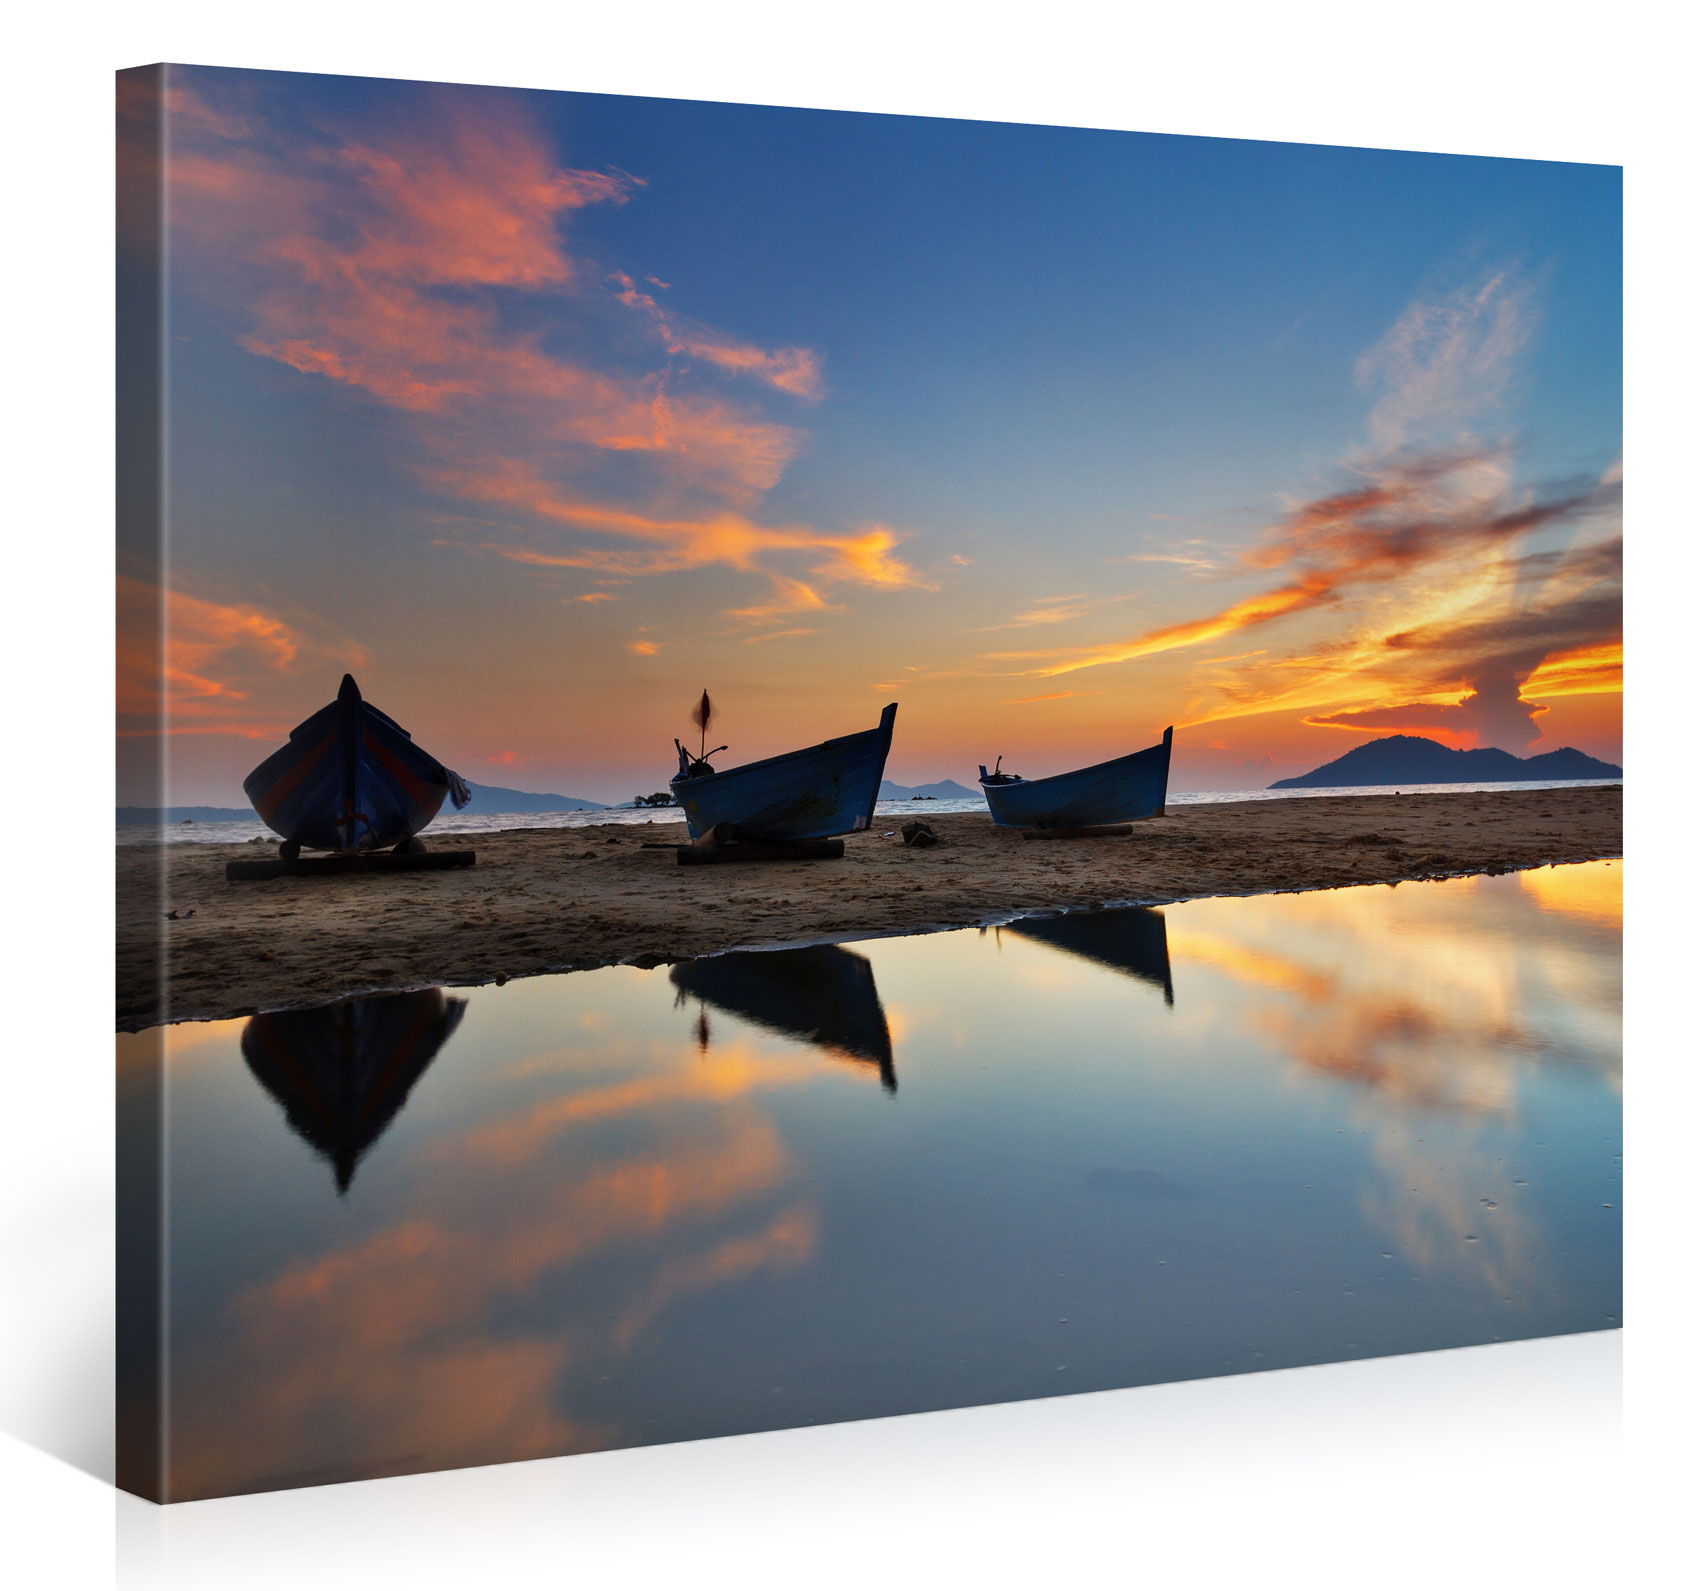 ASIAN FISHINGBOATS ON BEACH - 100x75cm - #e6390